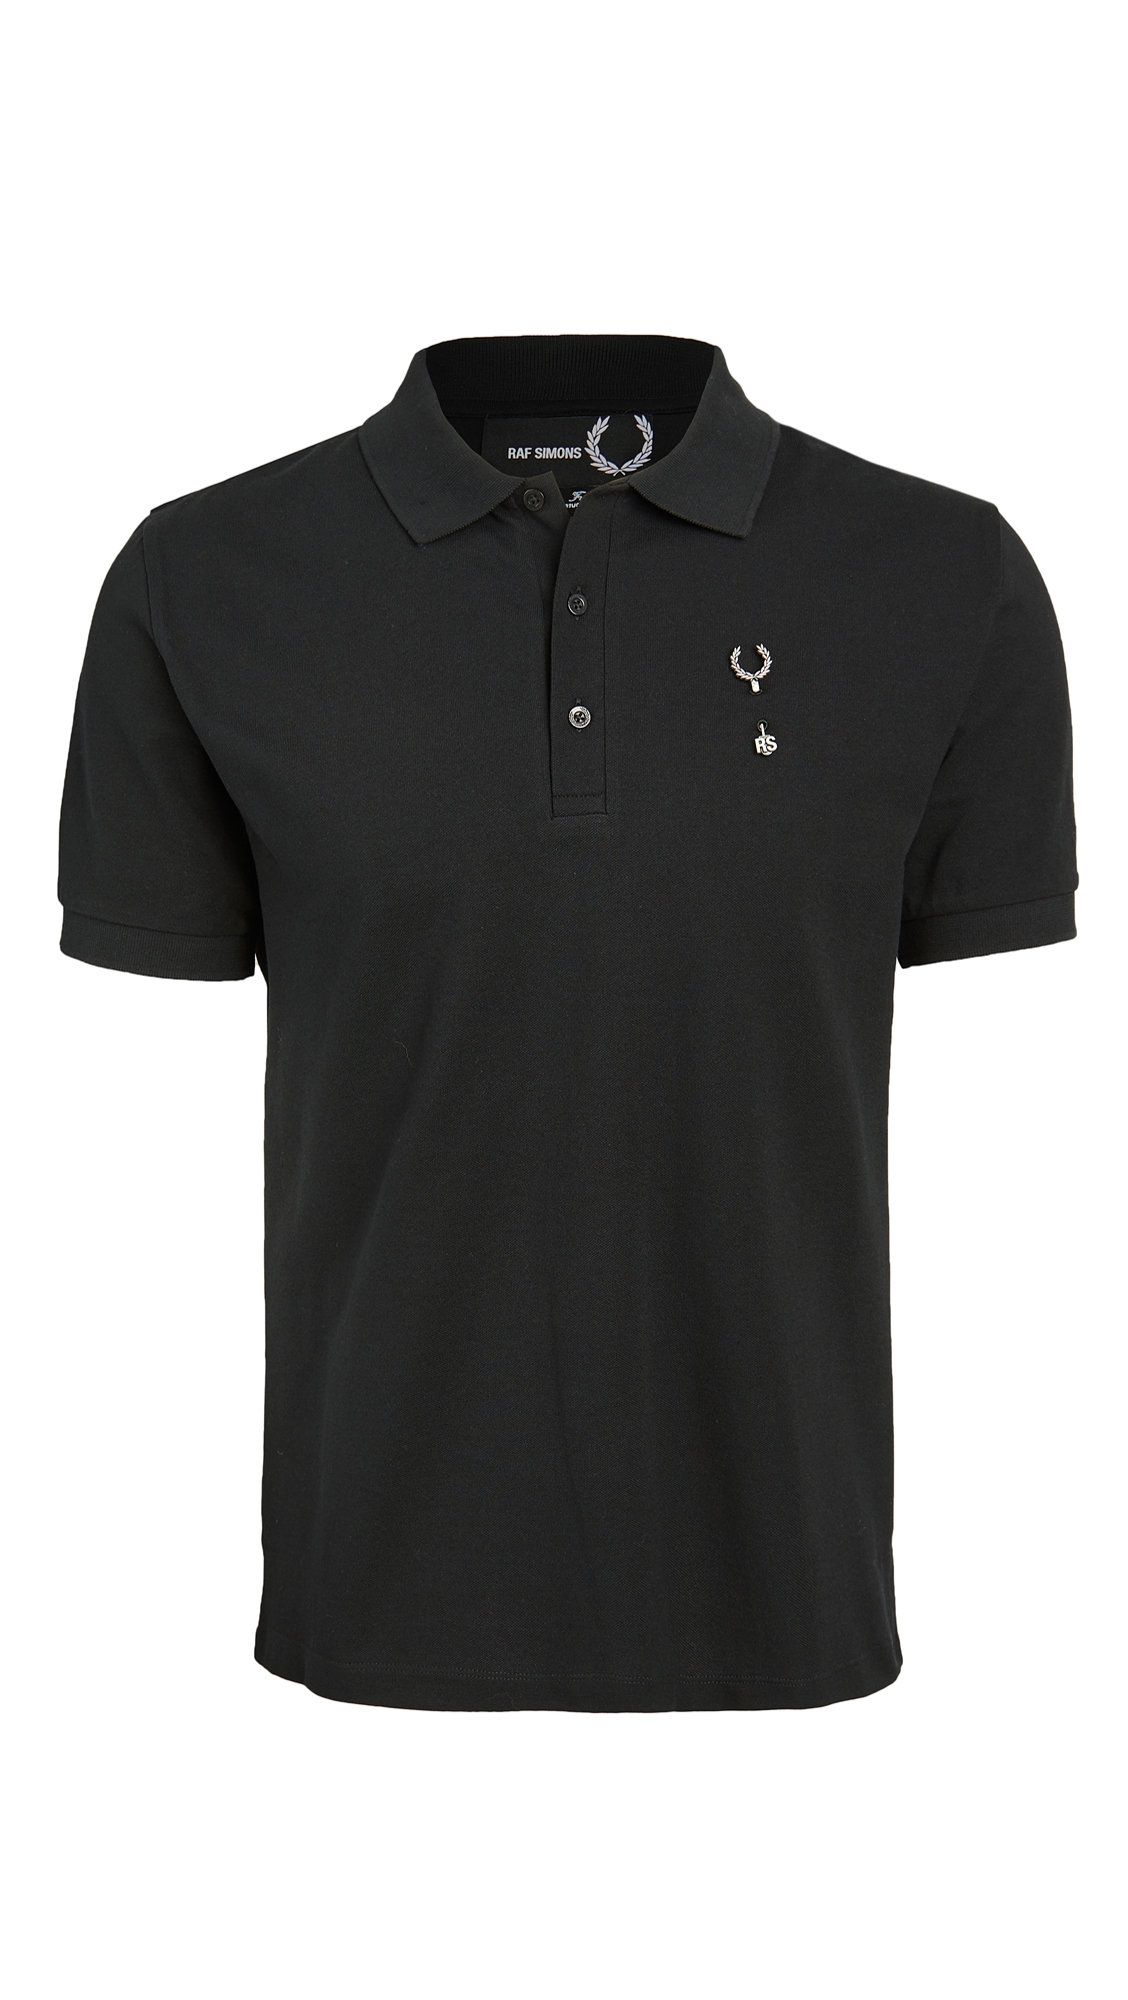 Raf Laurel Wreath Pin Polo